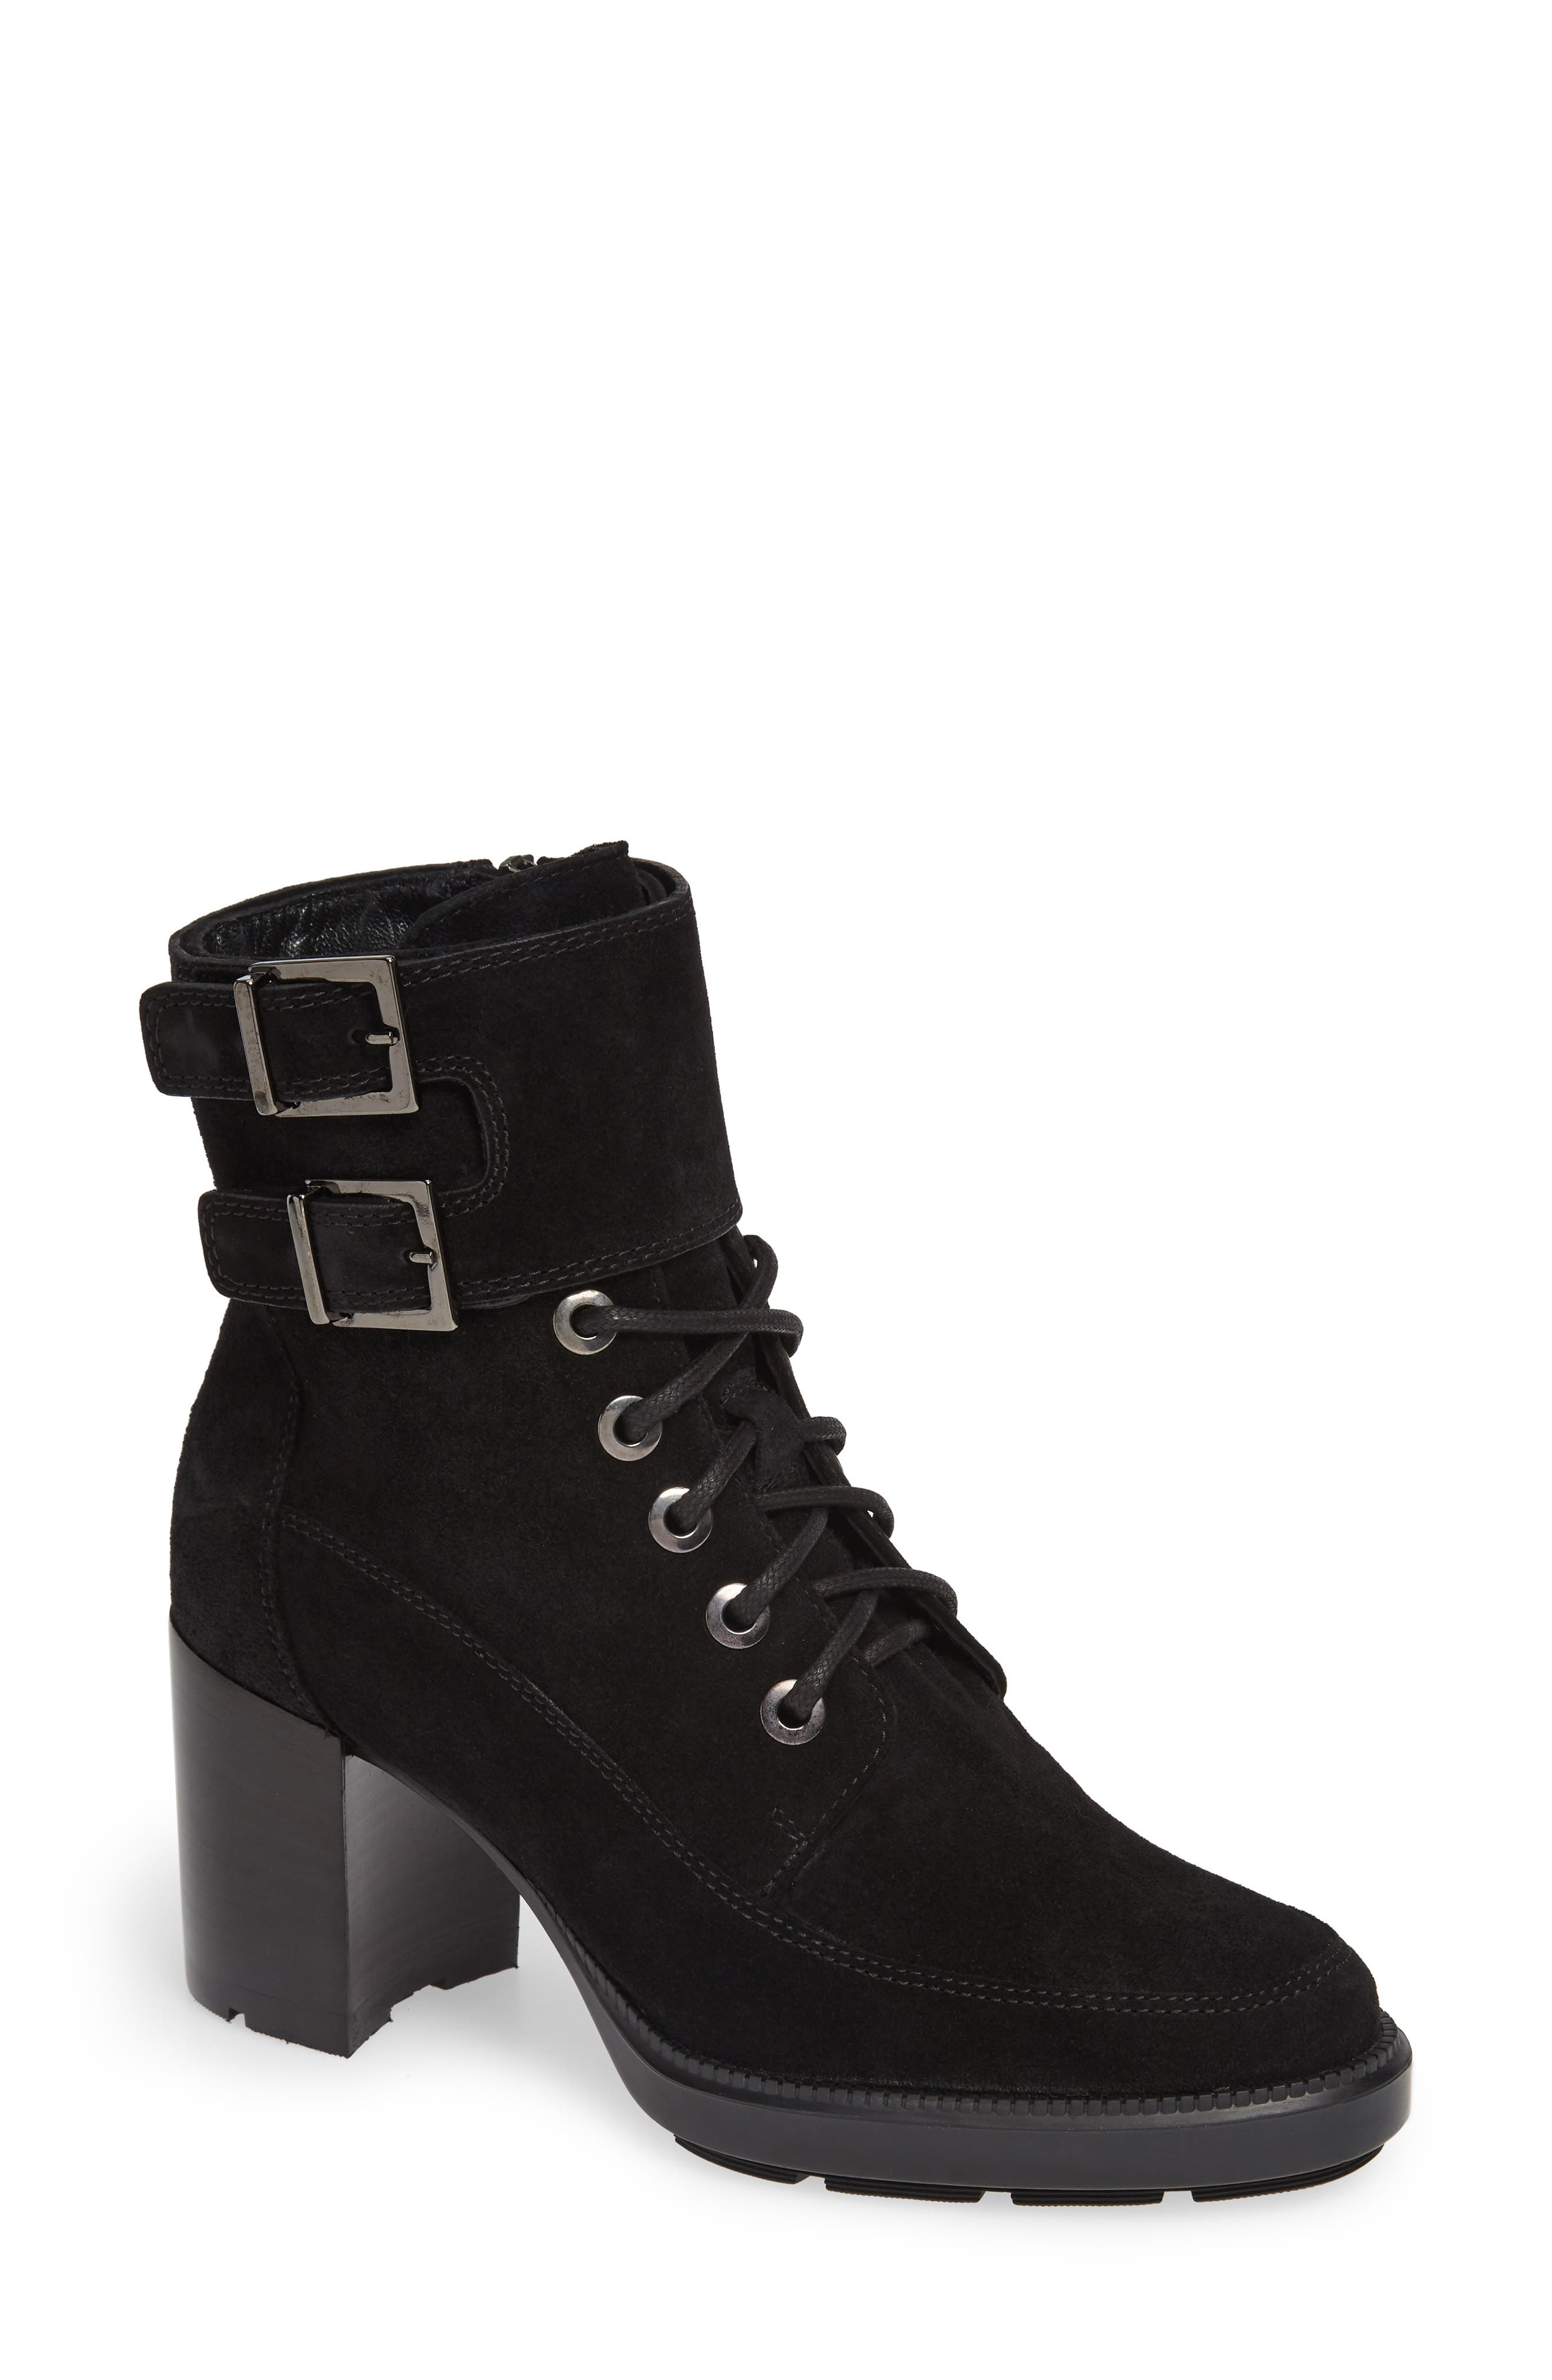 AQUATALIA Irene Suede Stitched Booties in Black